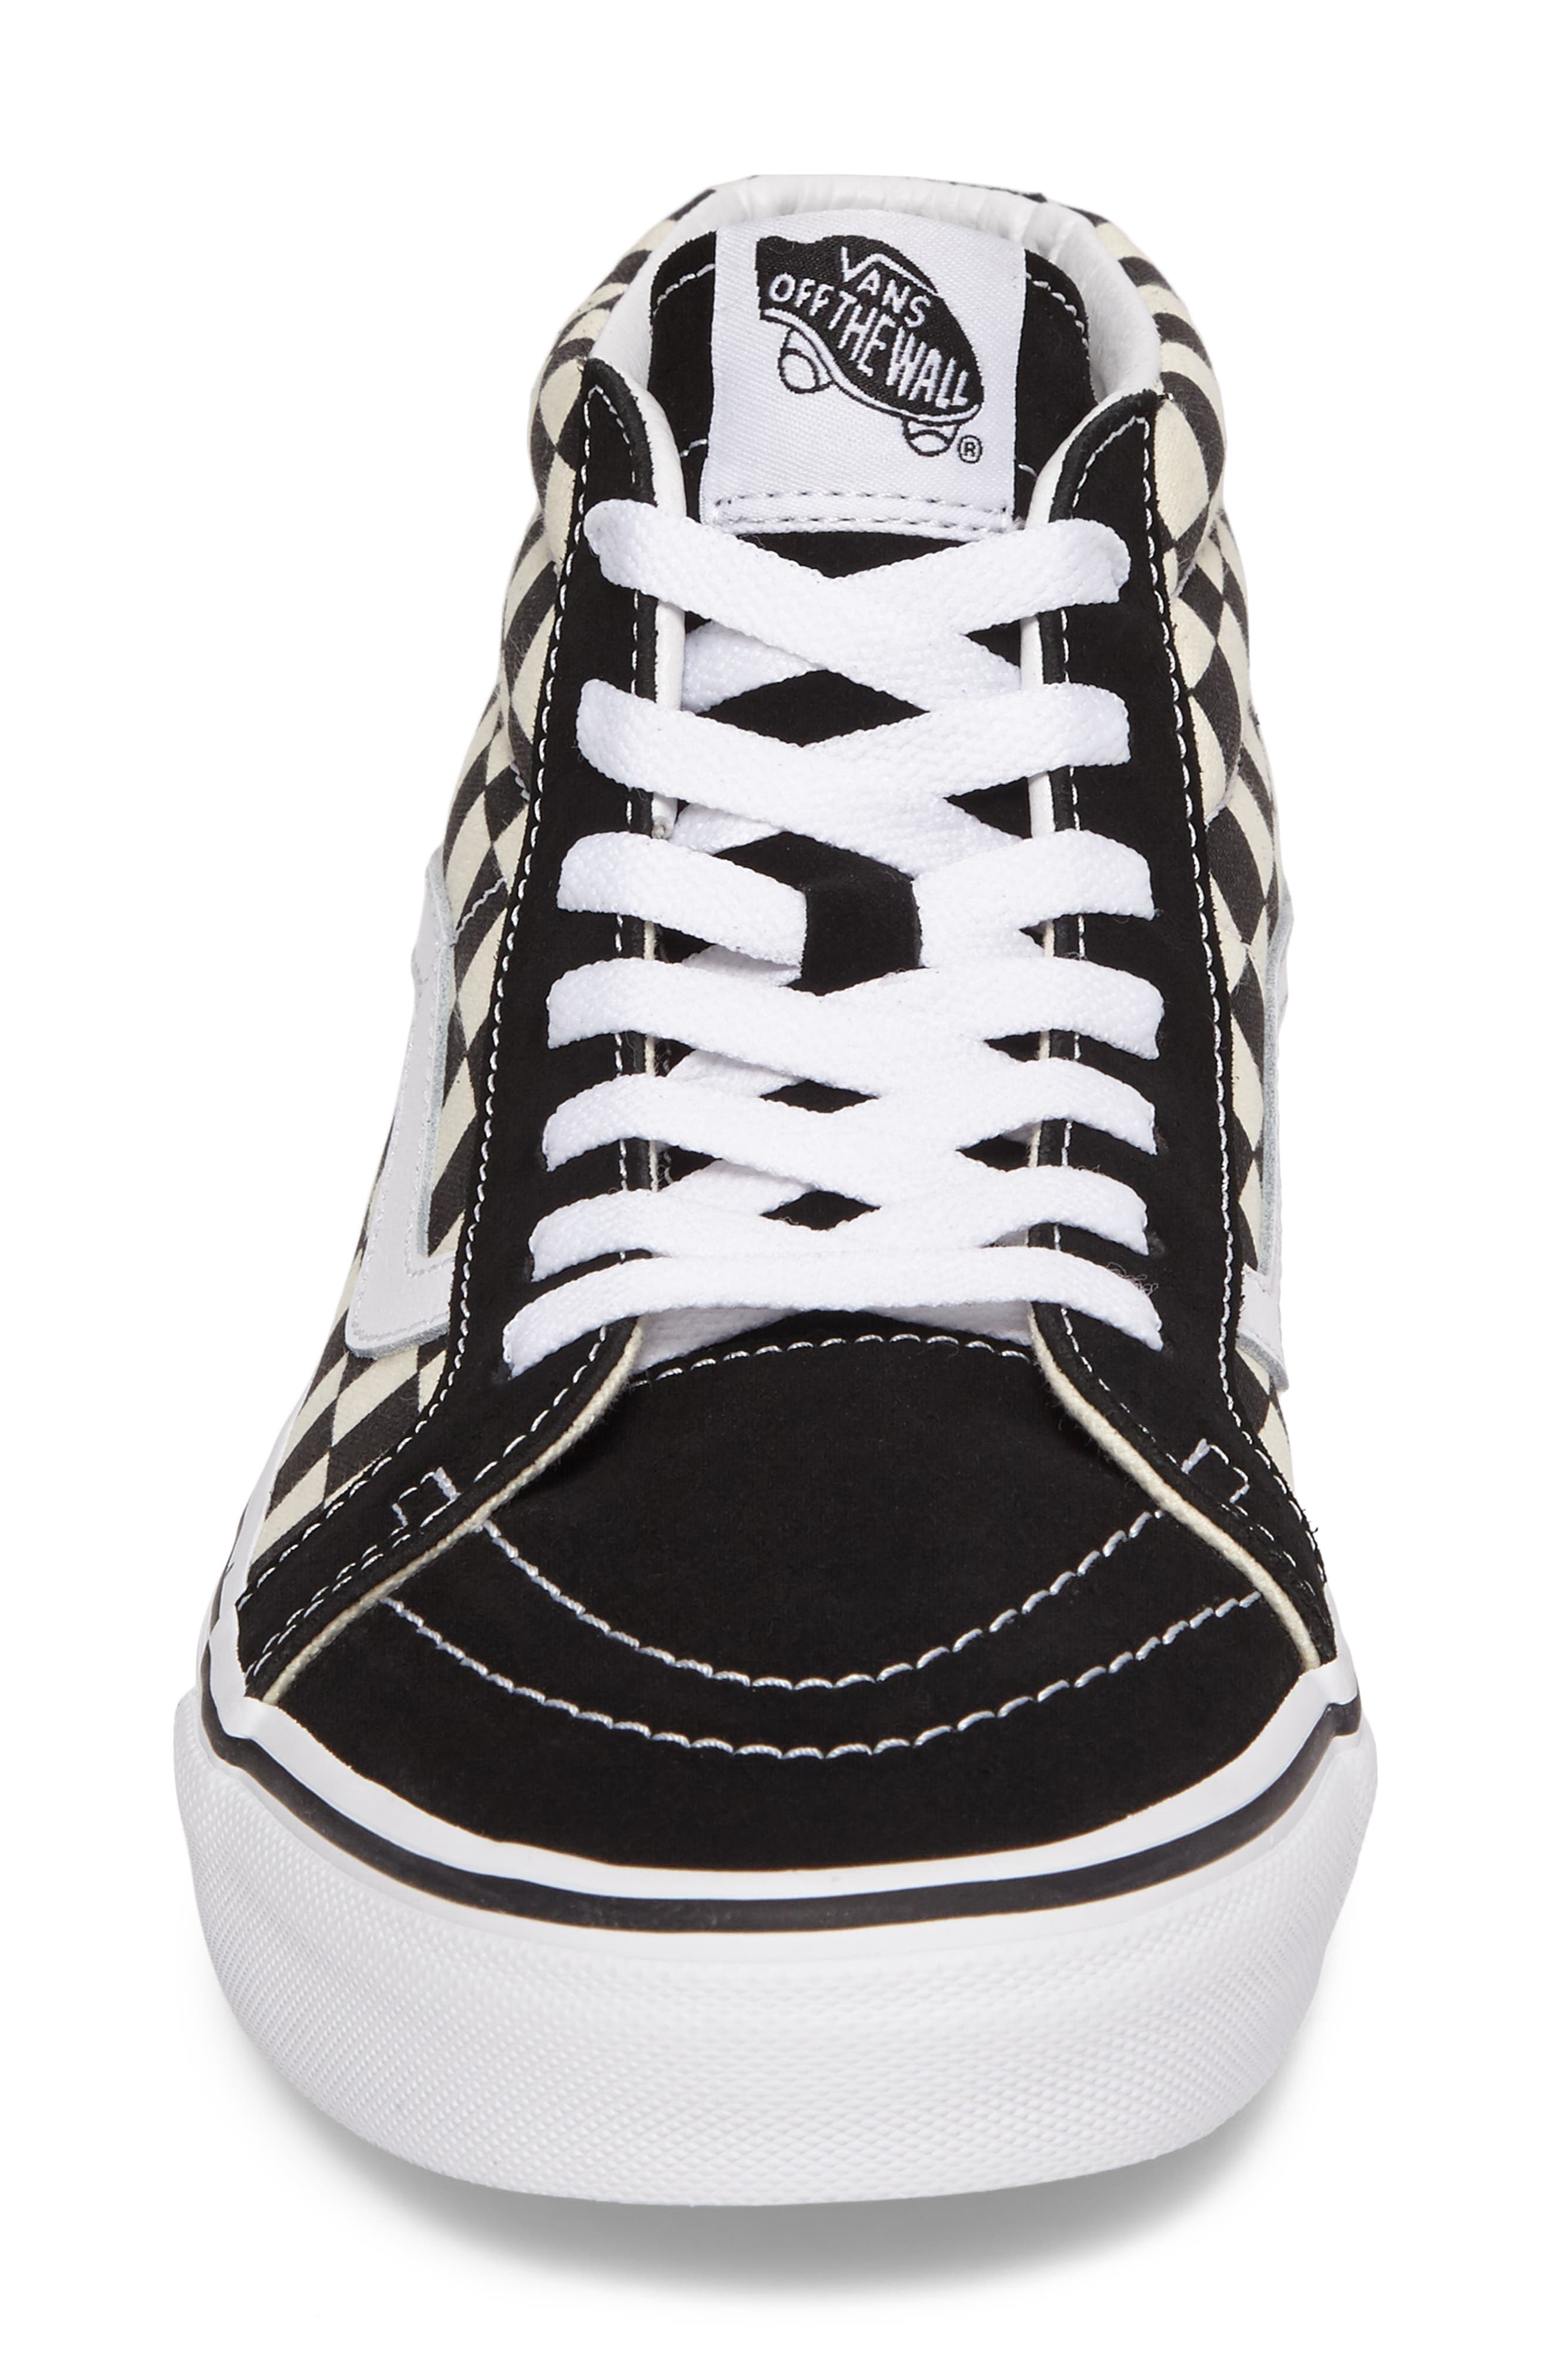 Sk8-Mid Reissue Sneaker,                             Alternate thumbnail 4, color,                             White Checker Canvas/ Suede